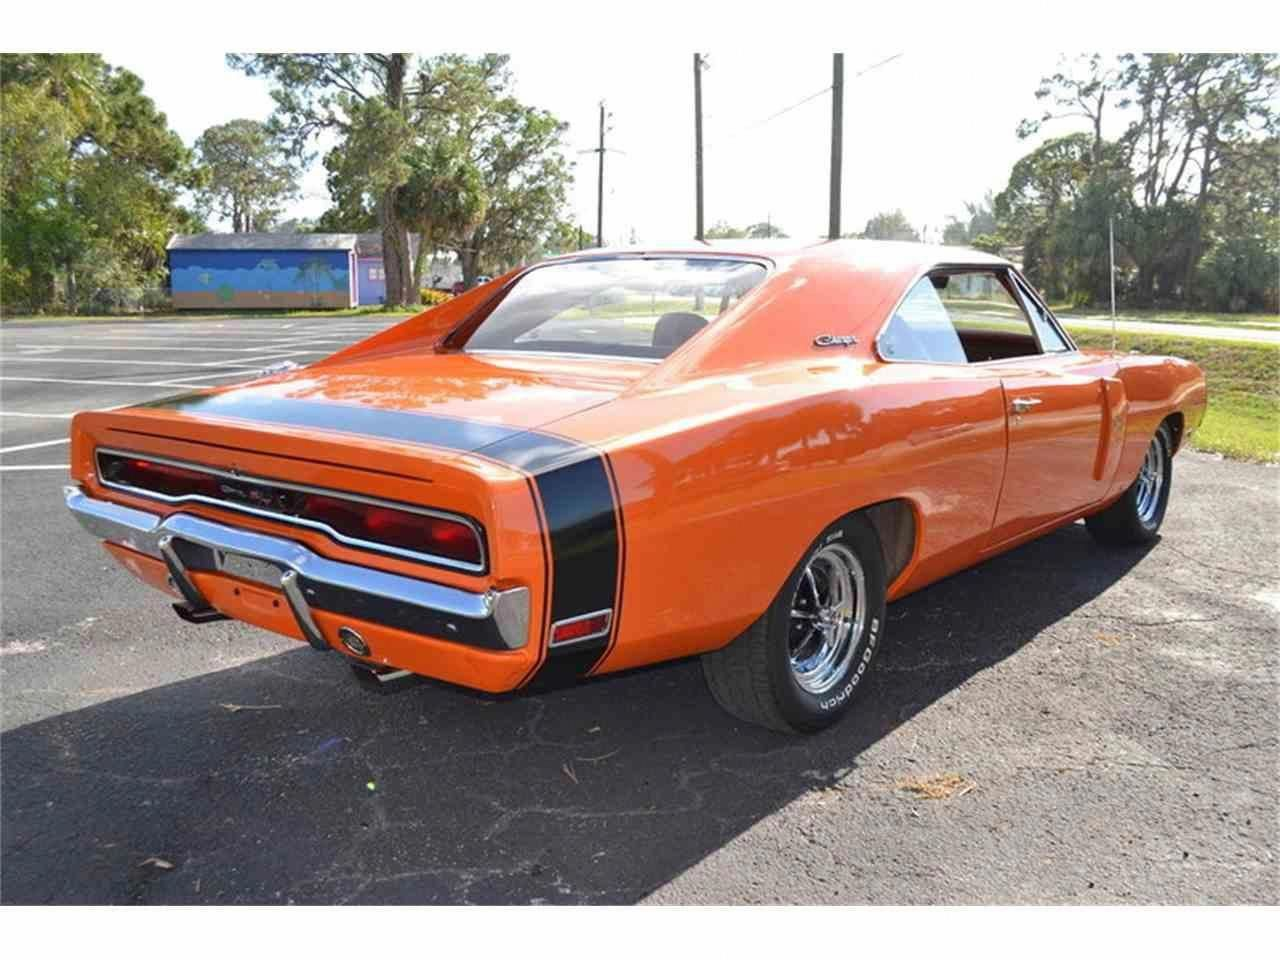 Muscle Cars Forever Dodge charger for sale, Dodge